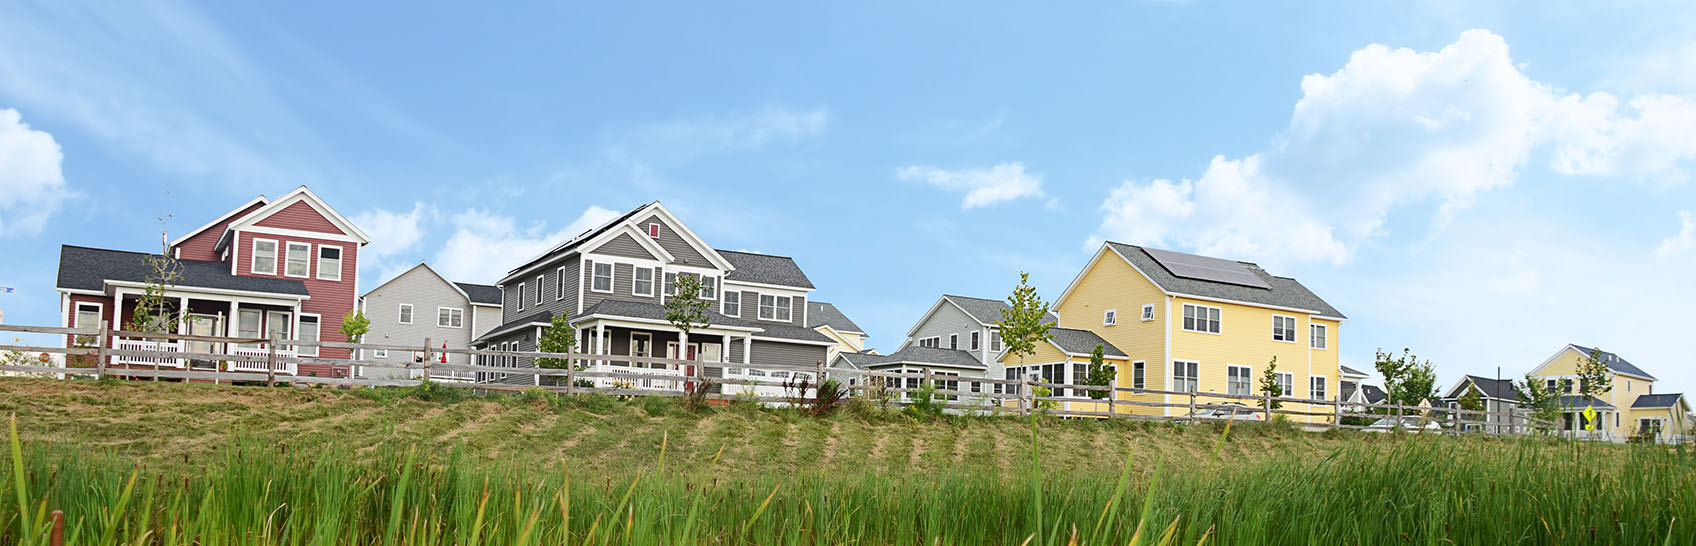 Vermont-green-homes-for-sale.jpg